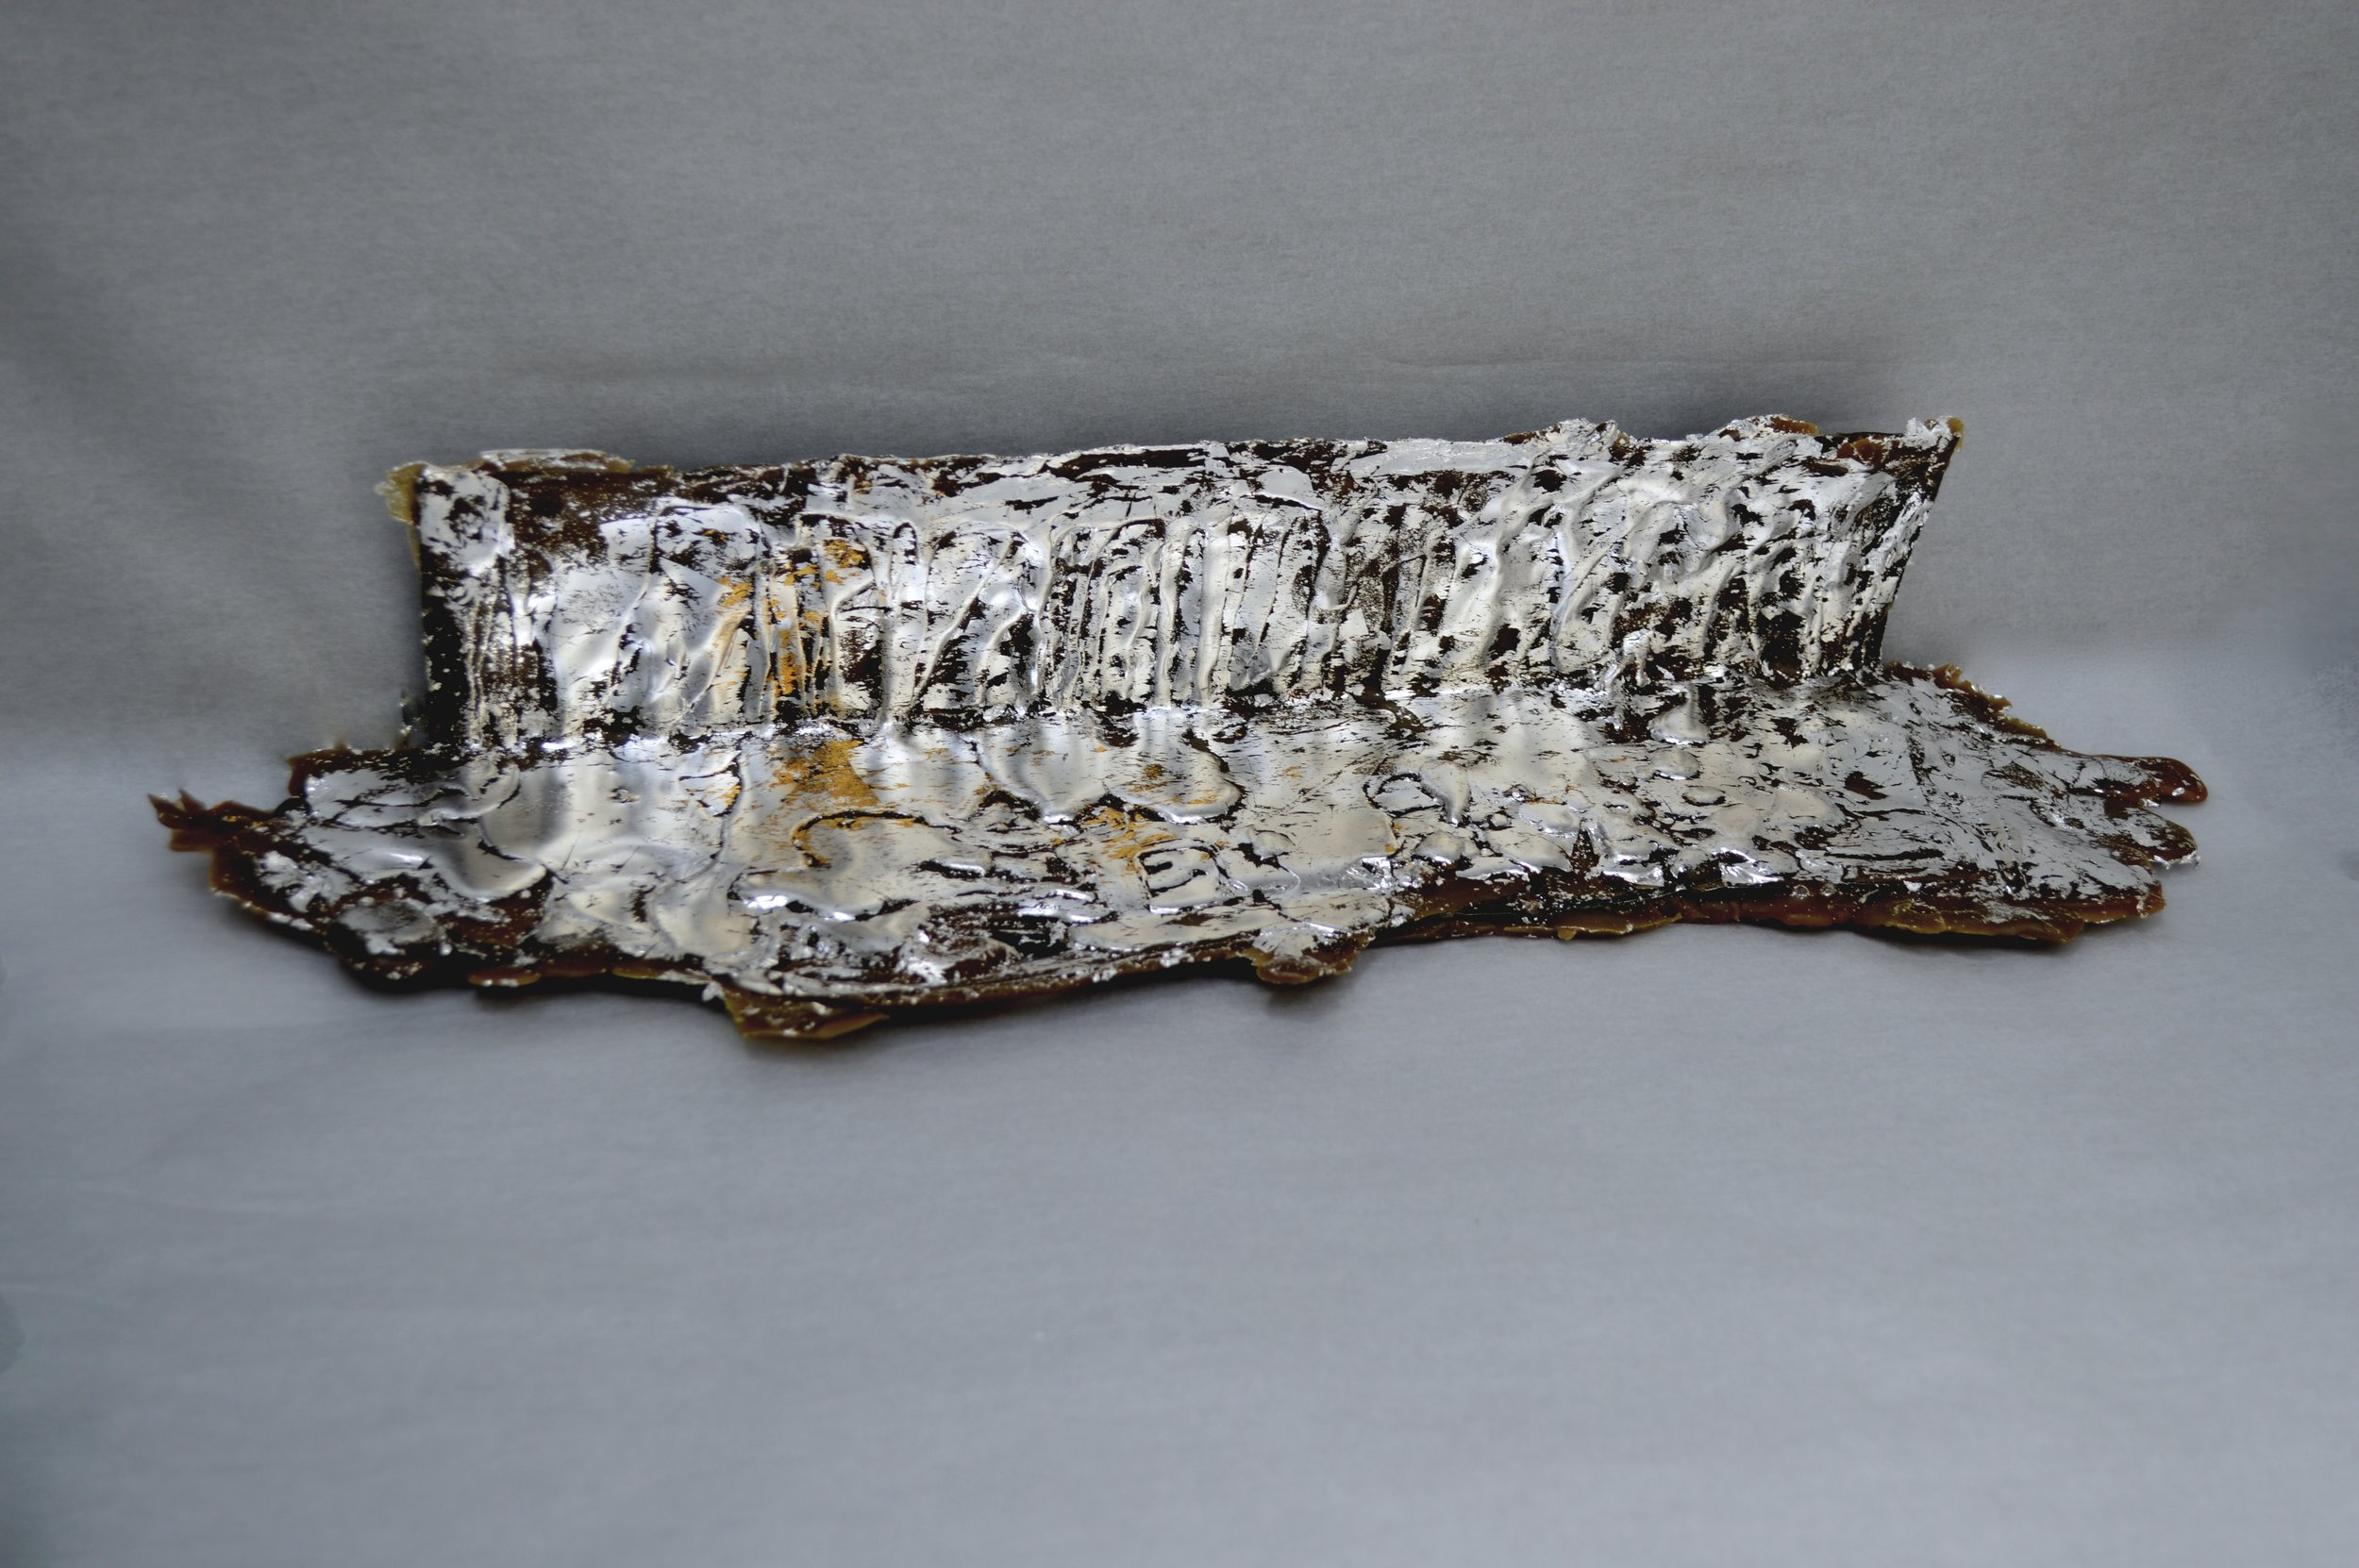 """Que Serra Serra?...will bee  ; site: title wall/floor foyer. material: matte aluminum, raw beeswax with tint, bee carcasses, silver leaf, 24k gold leaf. dimensions: 3.5"""" X 16.5"""" X 4.6"""", May 2019"""